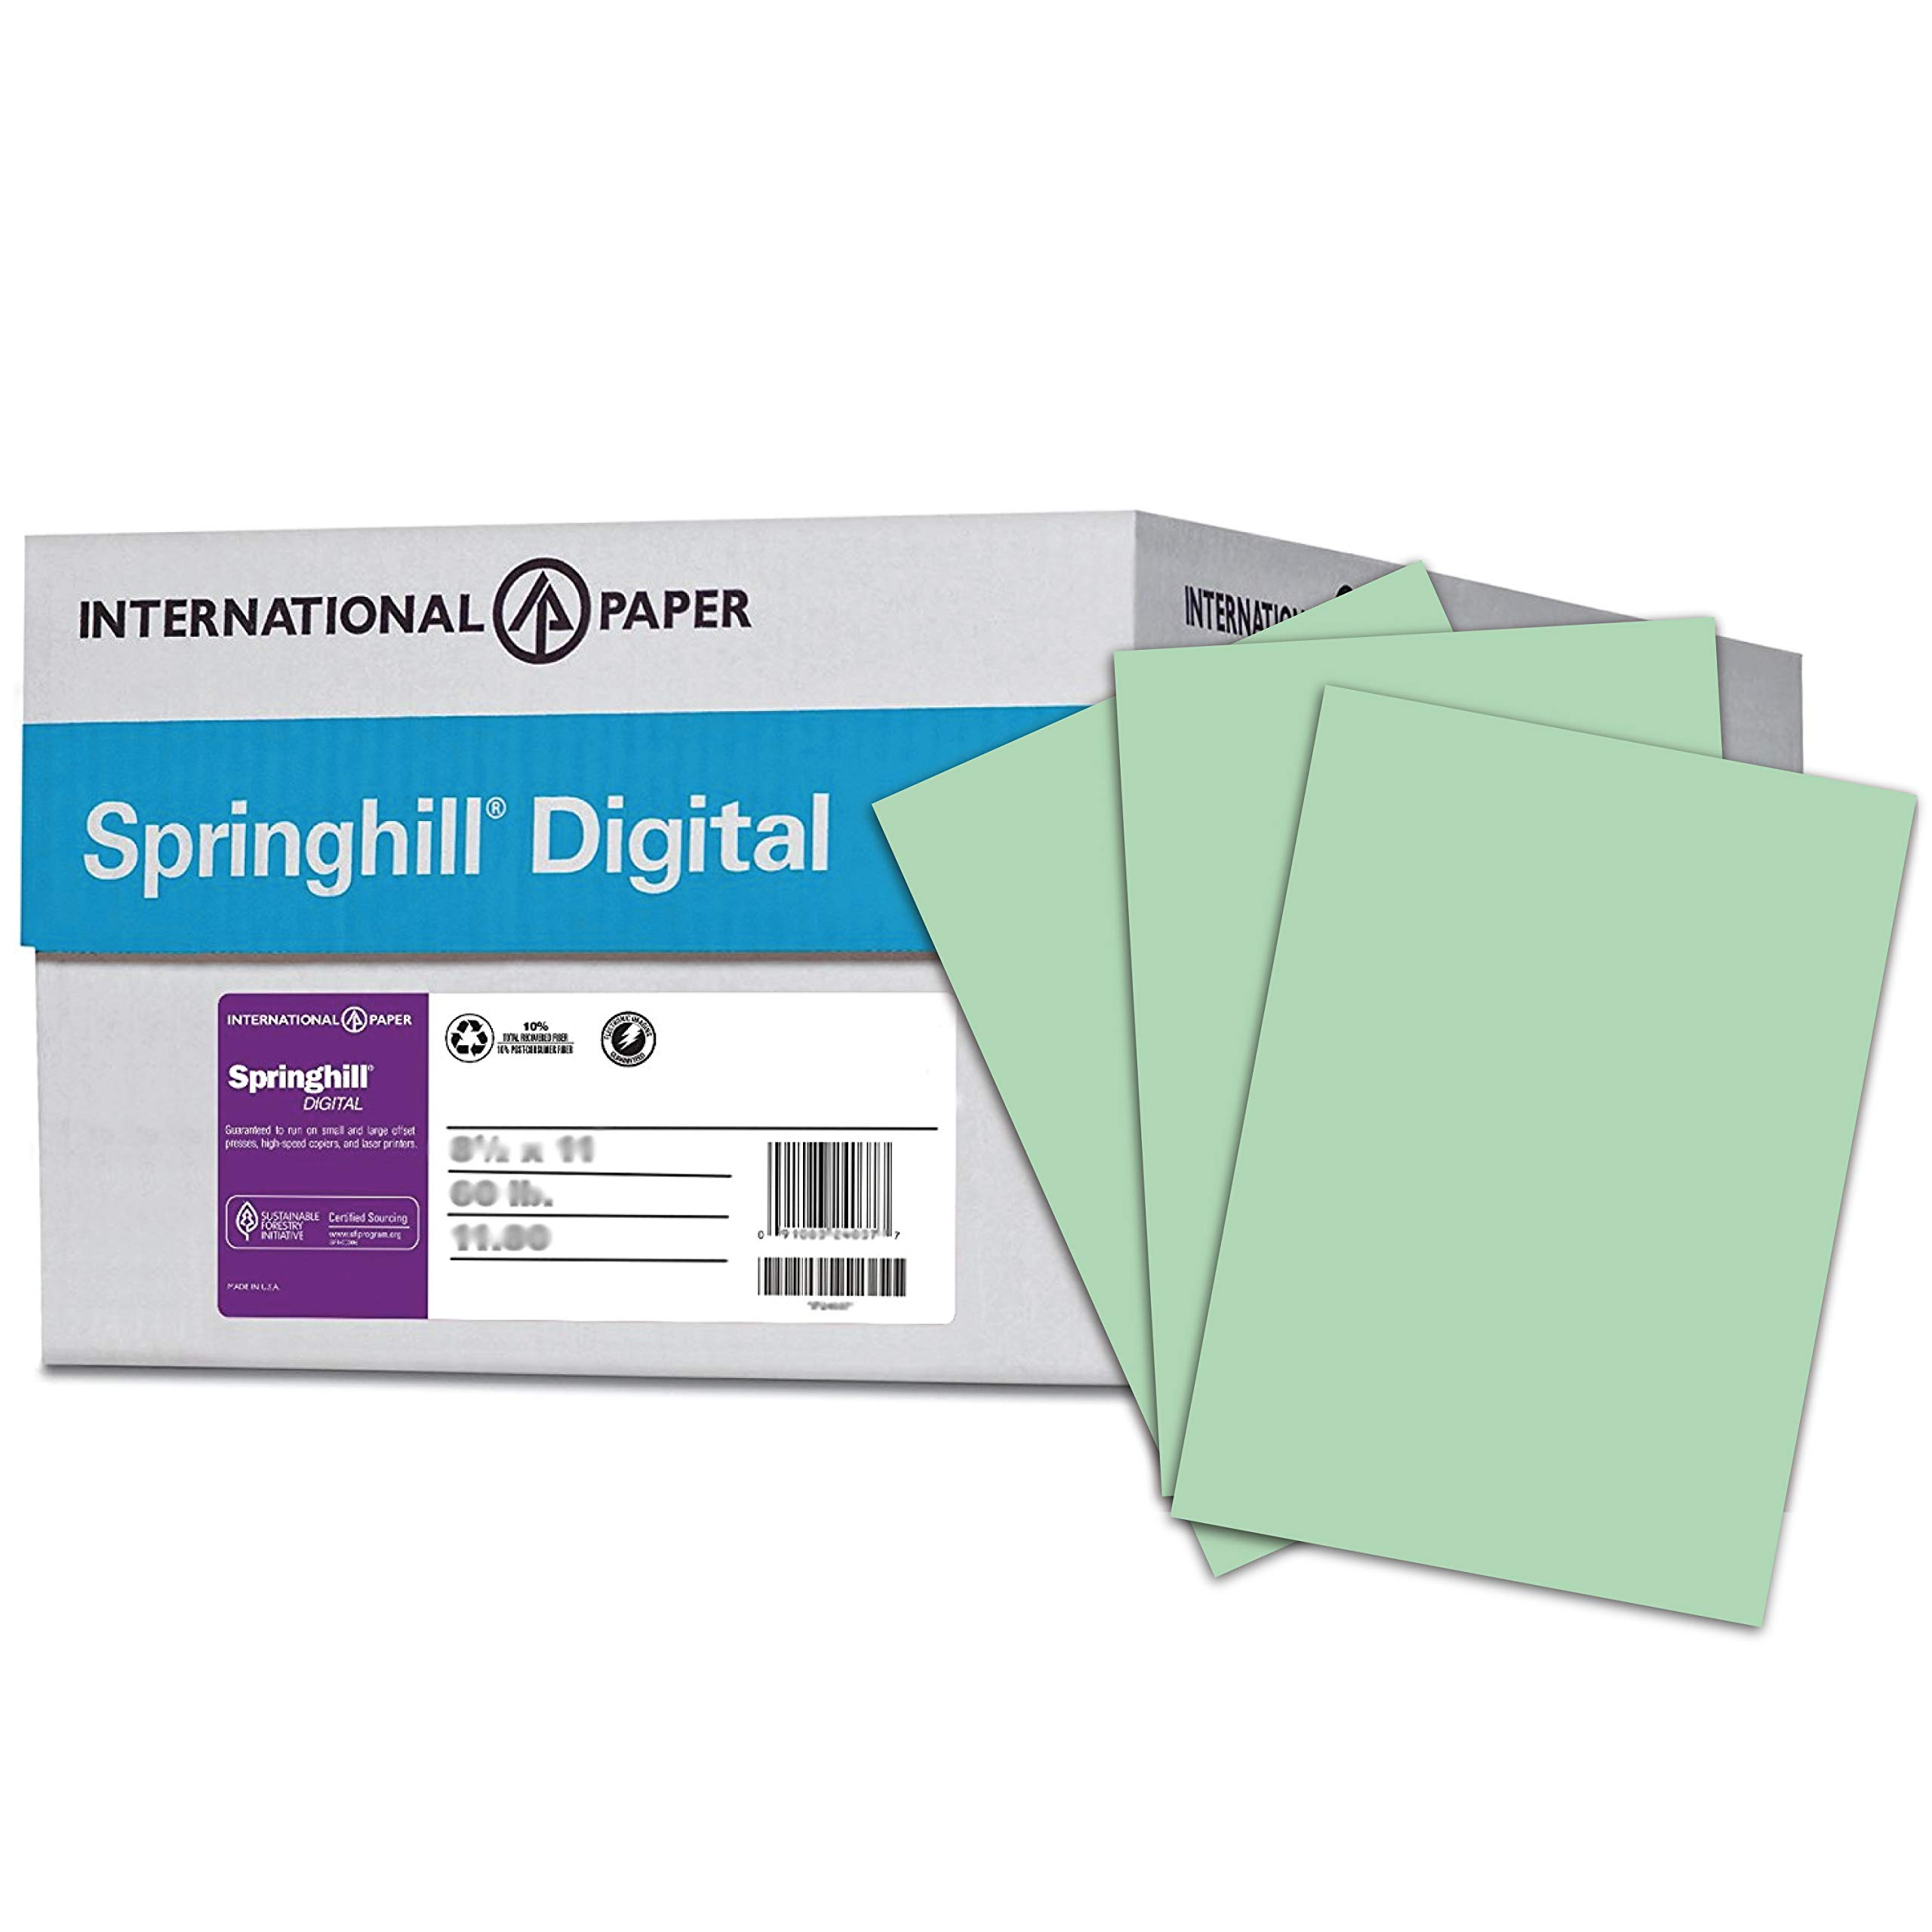 Springhill Colored Paper, Cardstock Paper, Green Paper, 90lb Paper, 163 gsm, Letter Size, 8.5 x 11 Paper, 10 Ream Case / 2,500 Sheets, Thick Paper, Card Stock Paper (045100C)